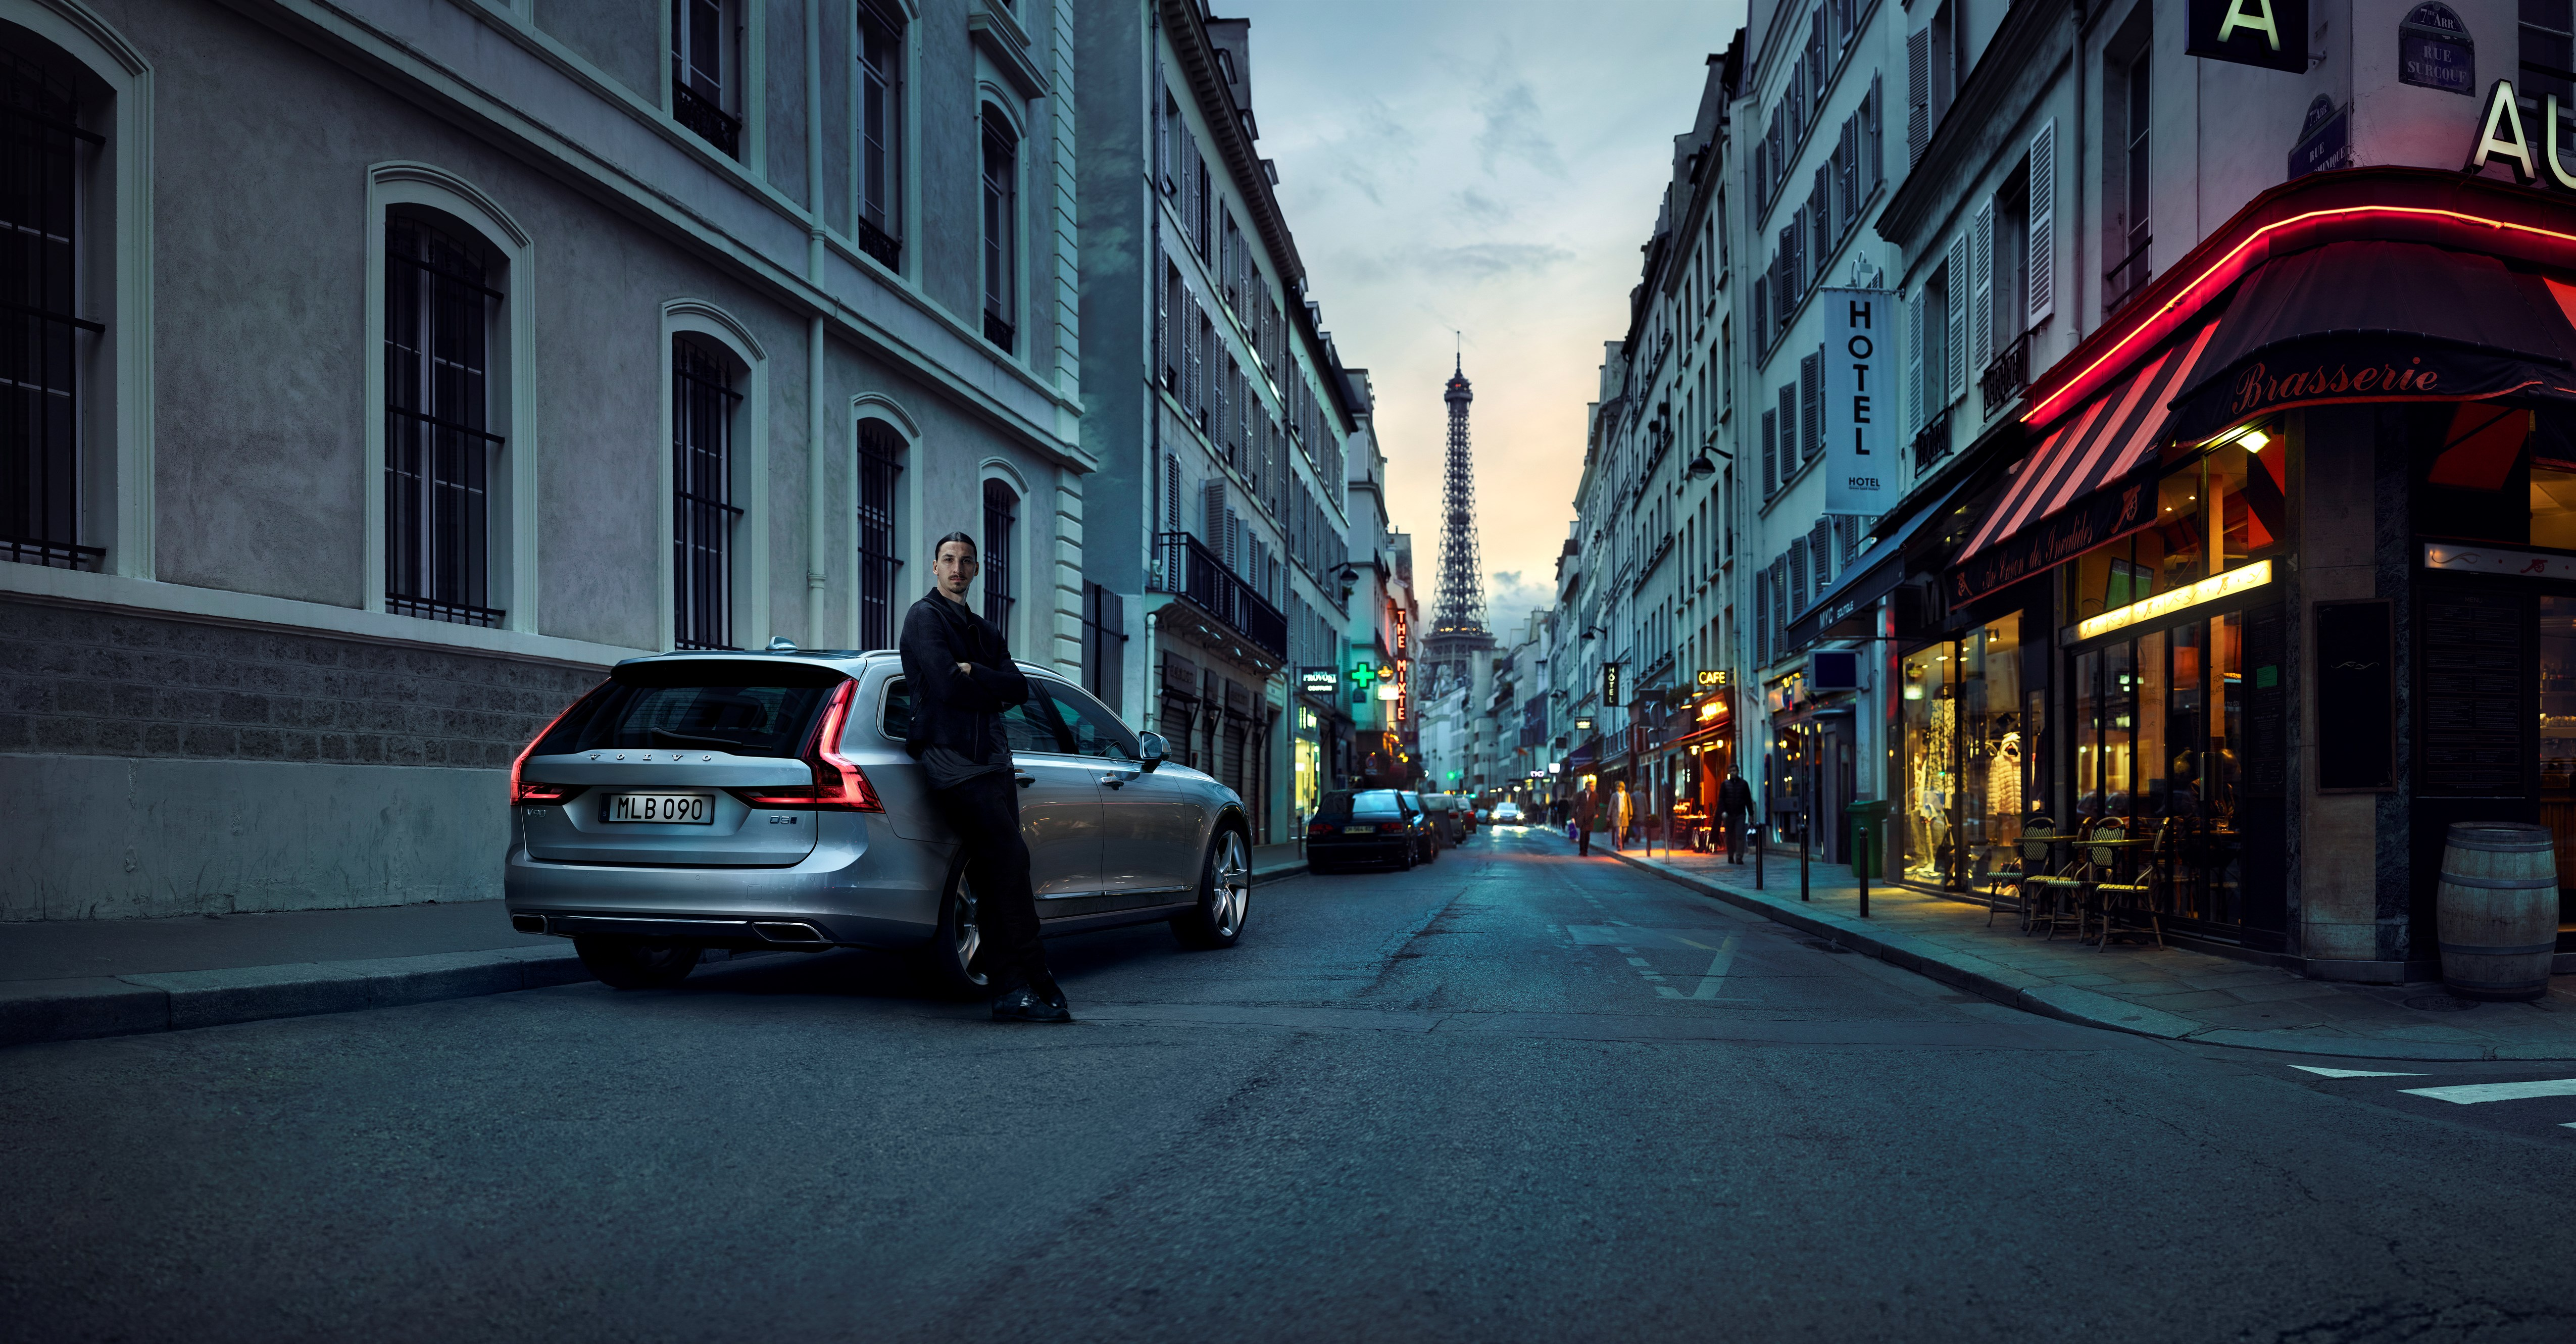 Watch Volvo's New V90 Ad Featuring Zlatan Ibrahimovic and Hans Zimmer's Music - autoevolution